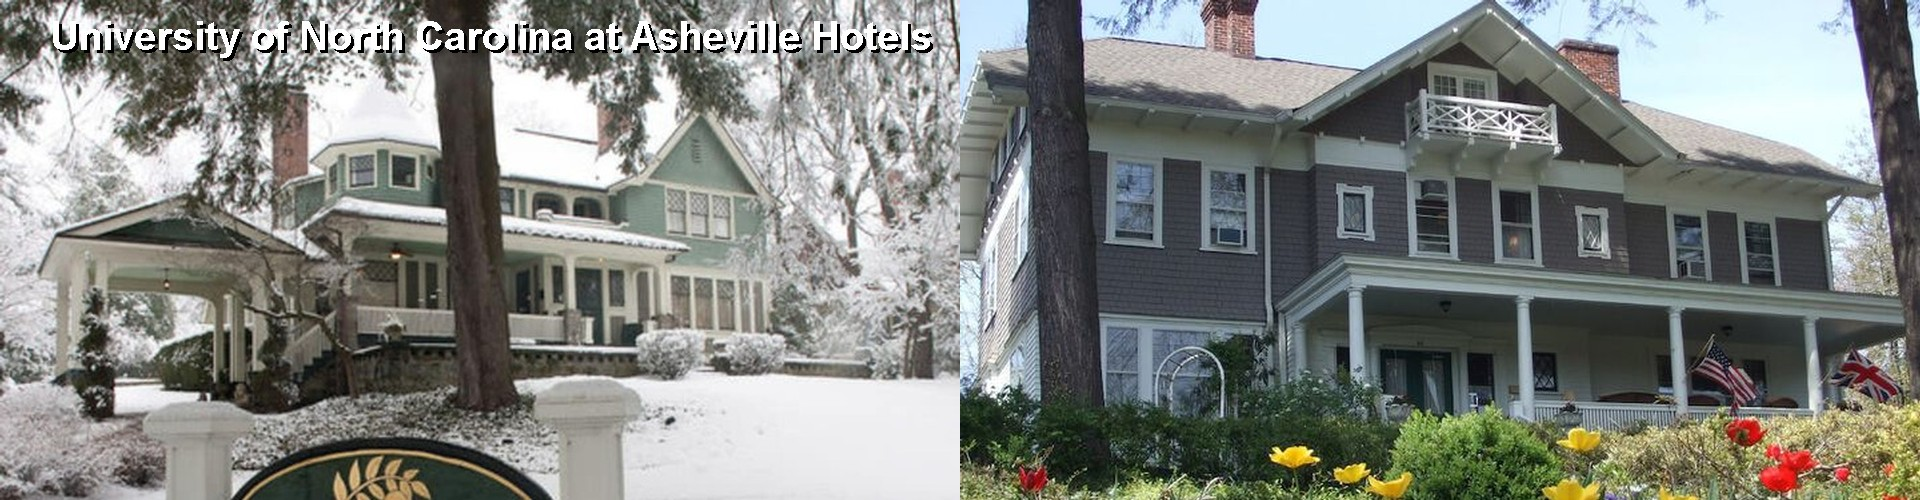 5 Best Hotels near University of North Carolina at Asheville